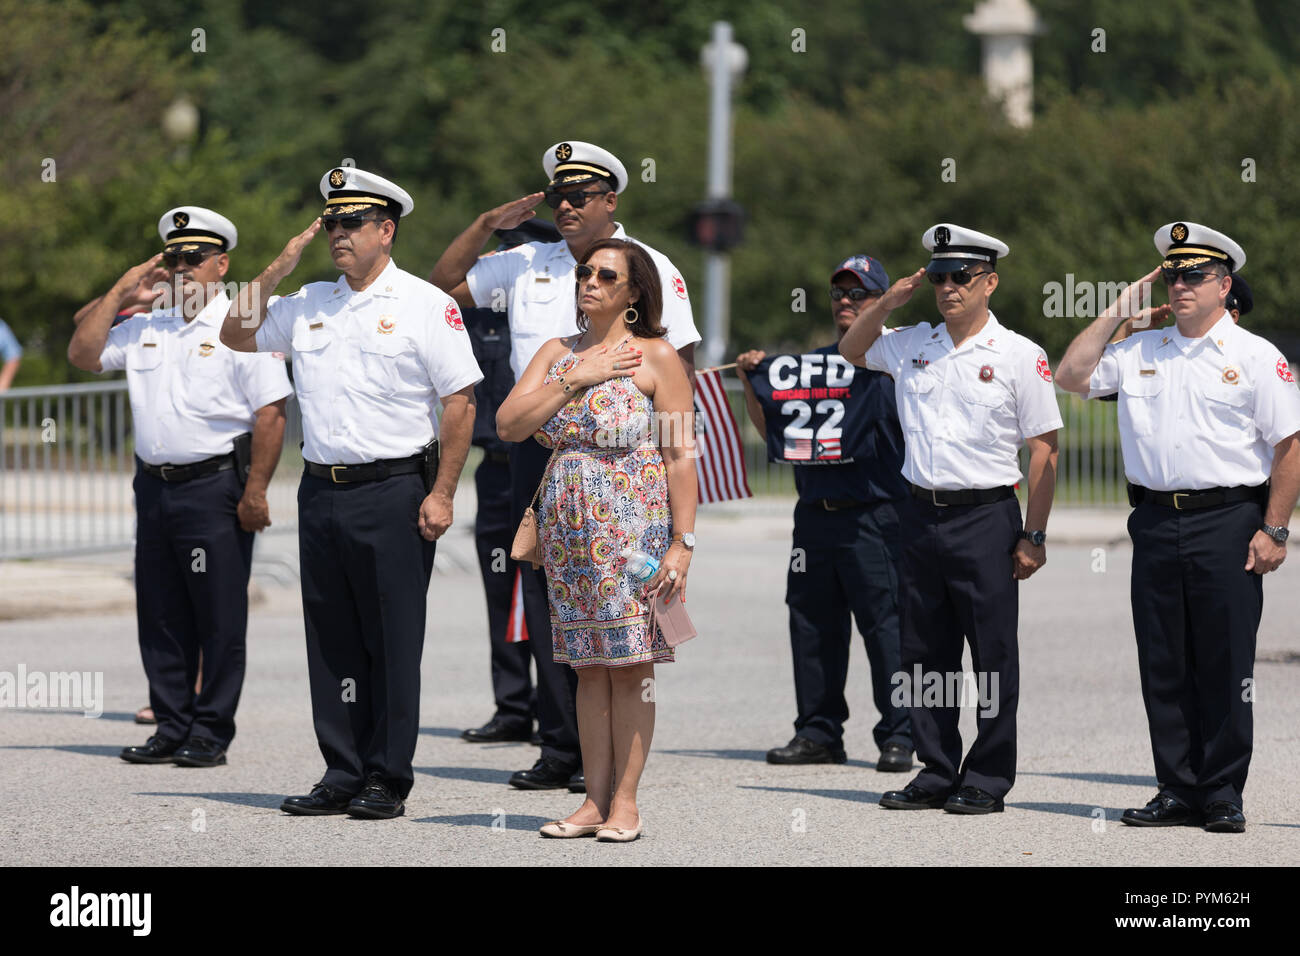 Chicago, Illinois, USA - June 16, 2018: The Puerto Rican Day Parade